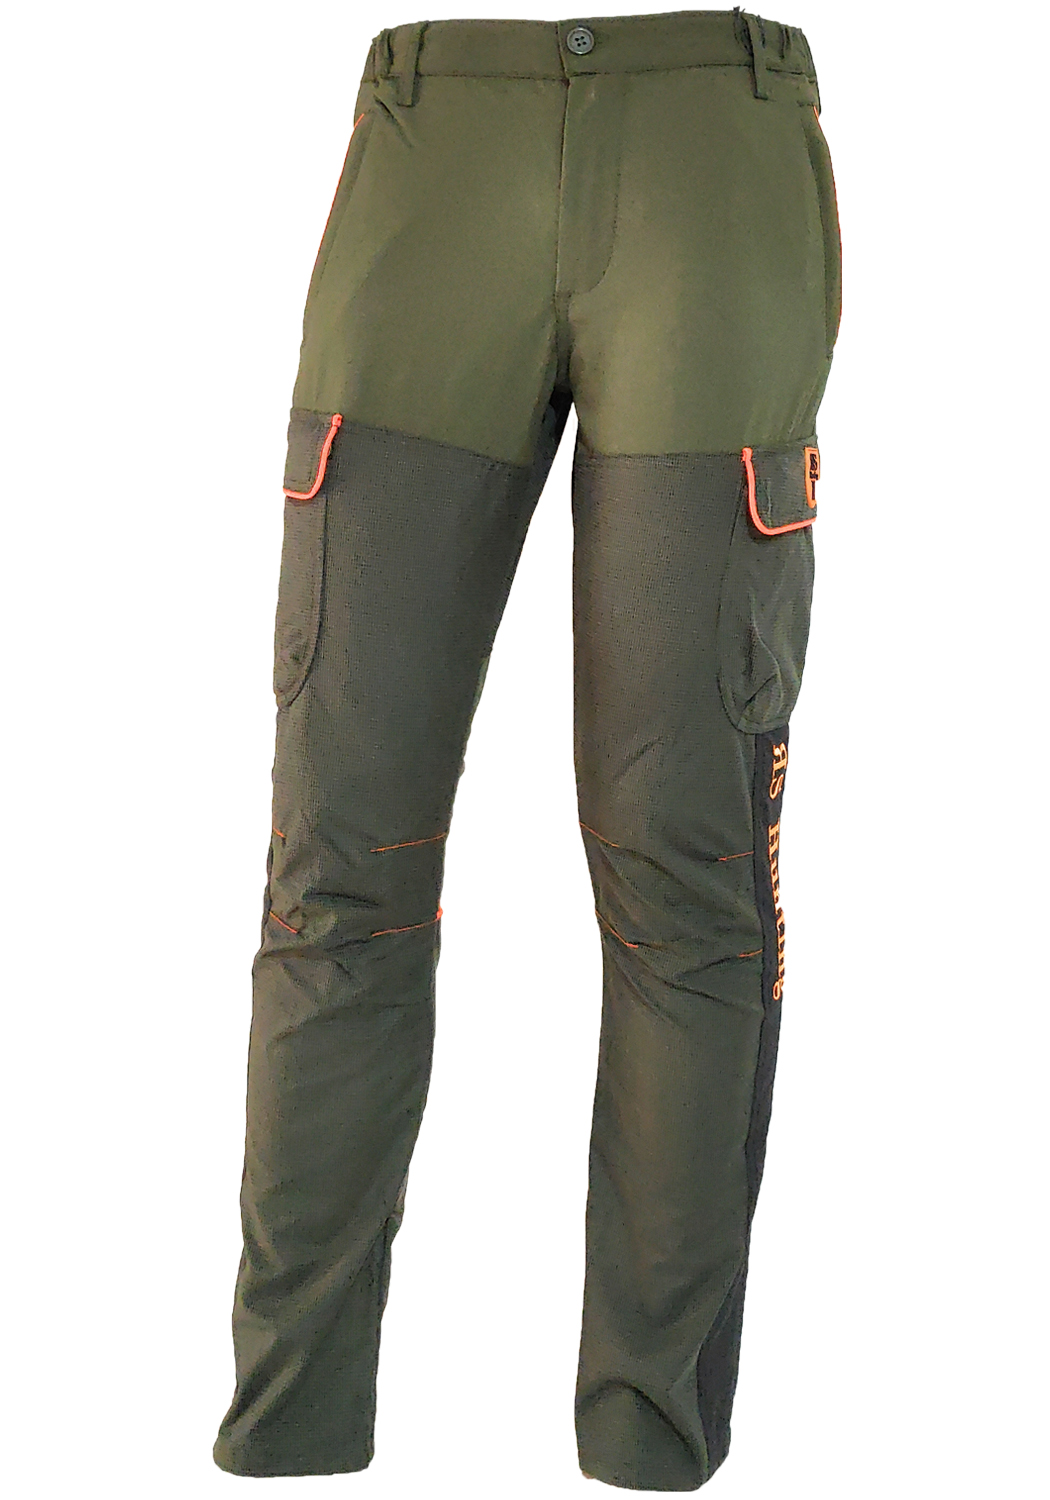 Pants trousers hunting elastic kevlar reinforcements resistant man